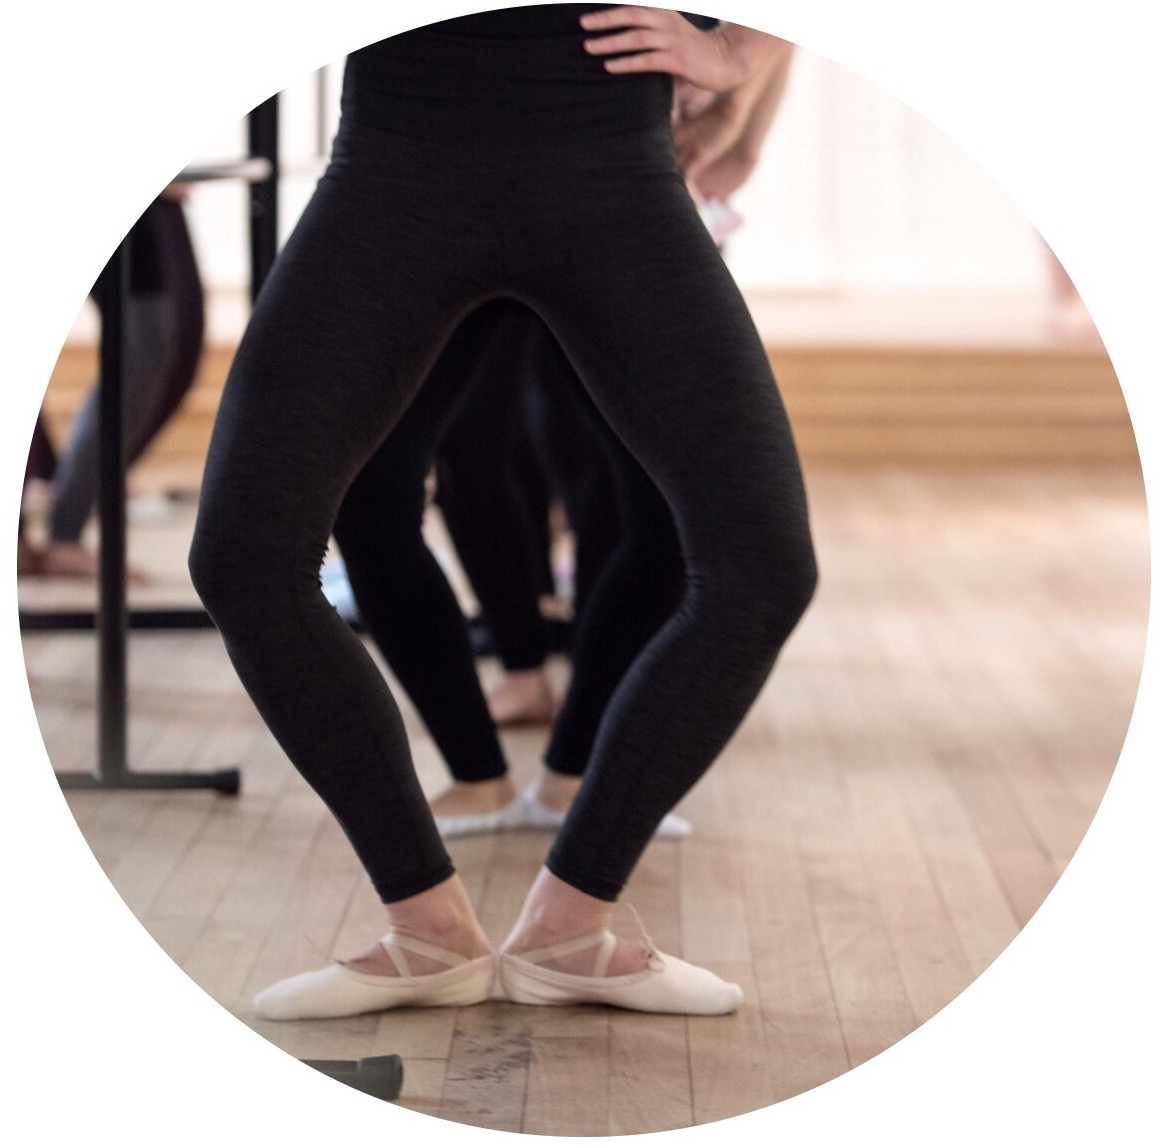 Ballet Barre - Experience a traditional ballet barre class in a fun, non-judgemental environment. This class is designed to mobilize and strengthen using techniques found in a ballet class. It also incorporates conditioning exercises used by dancers. No previous dance experience required.